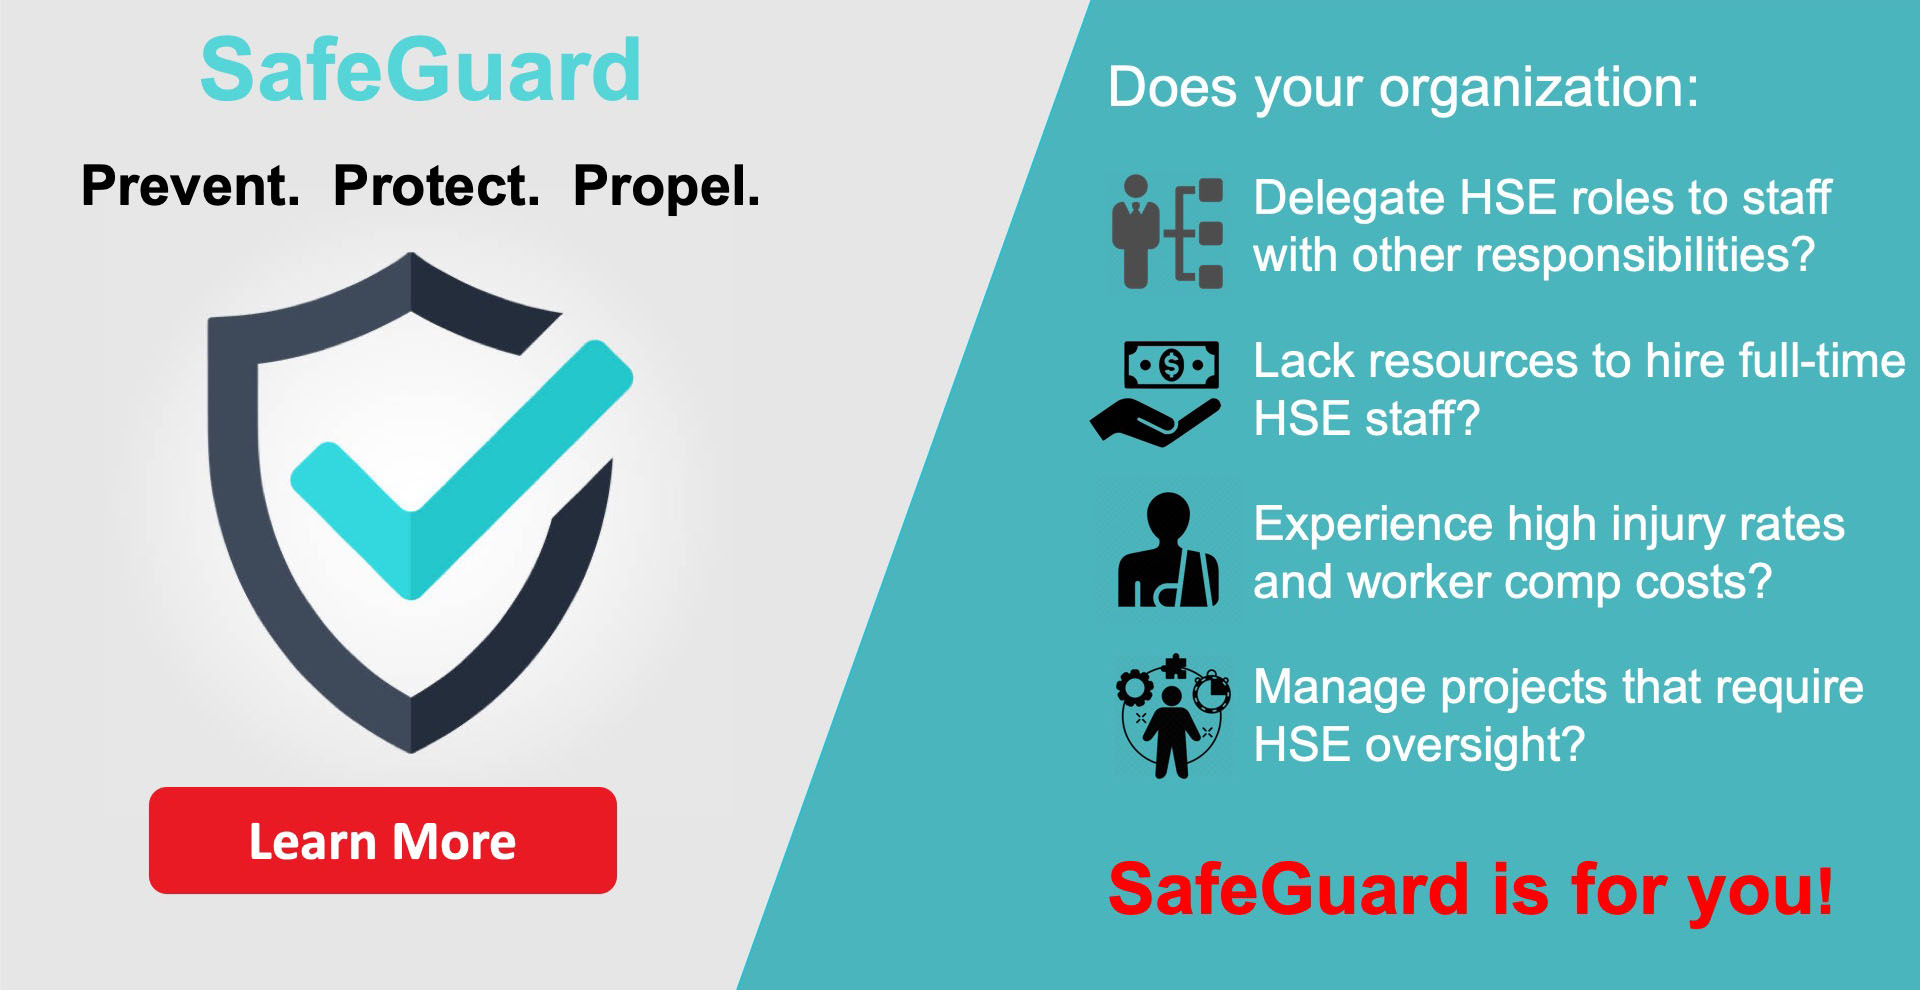 Safeguard Image